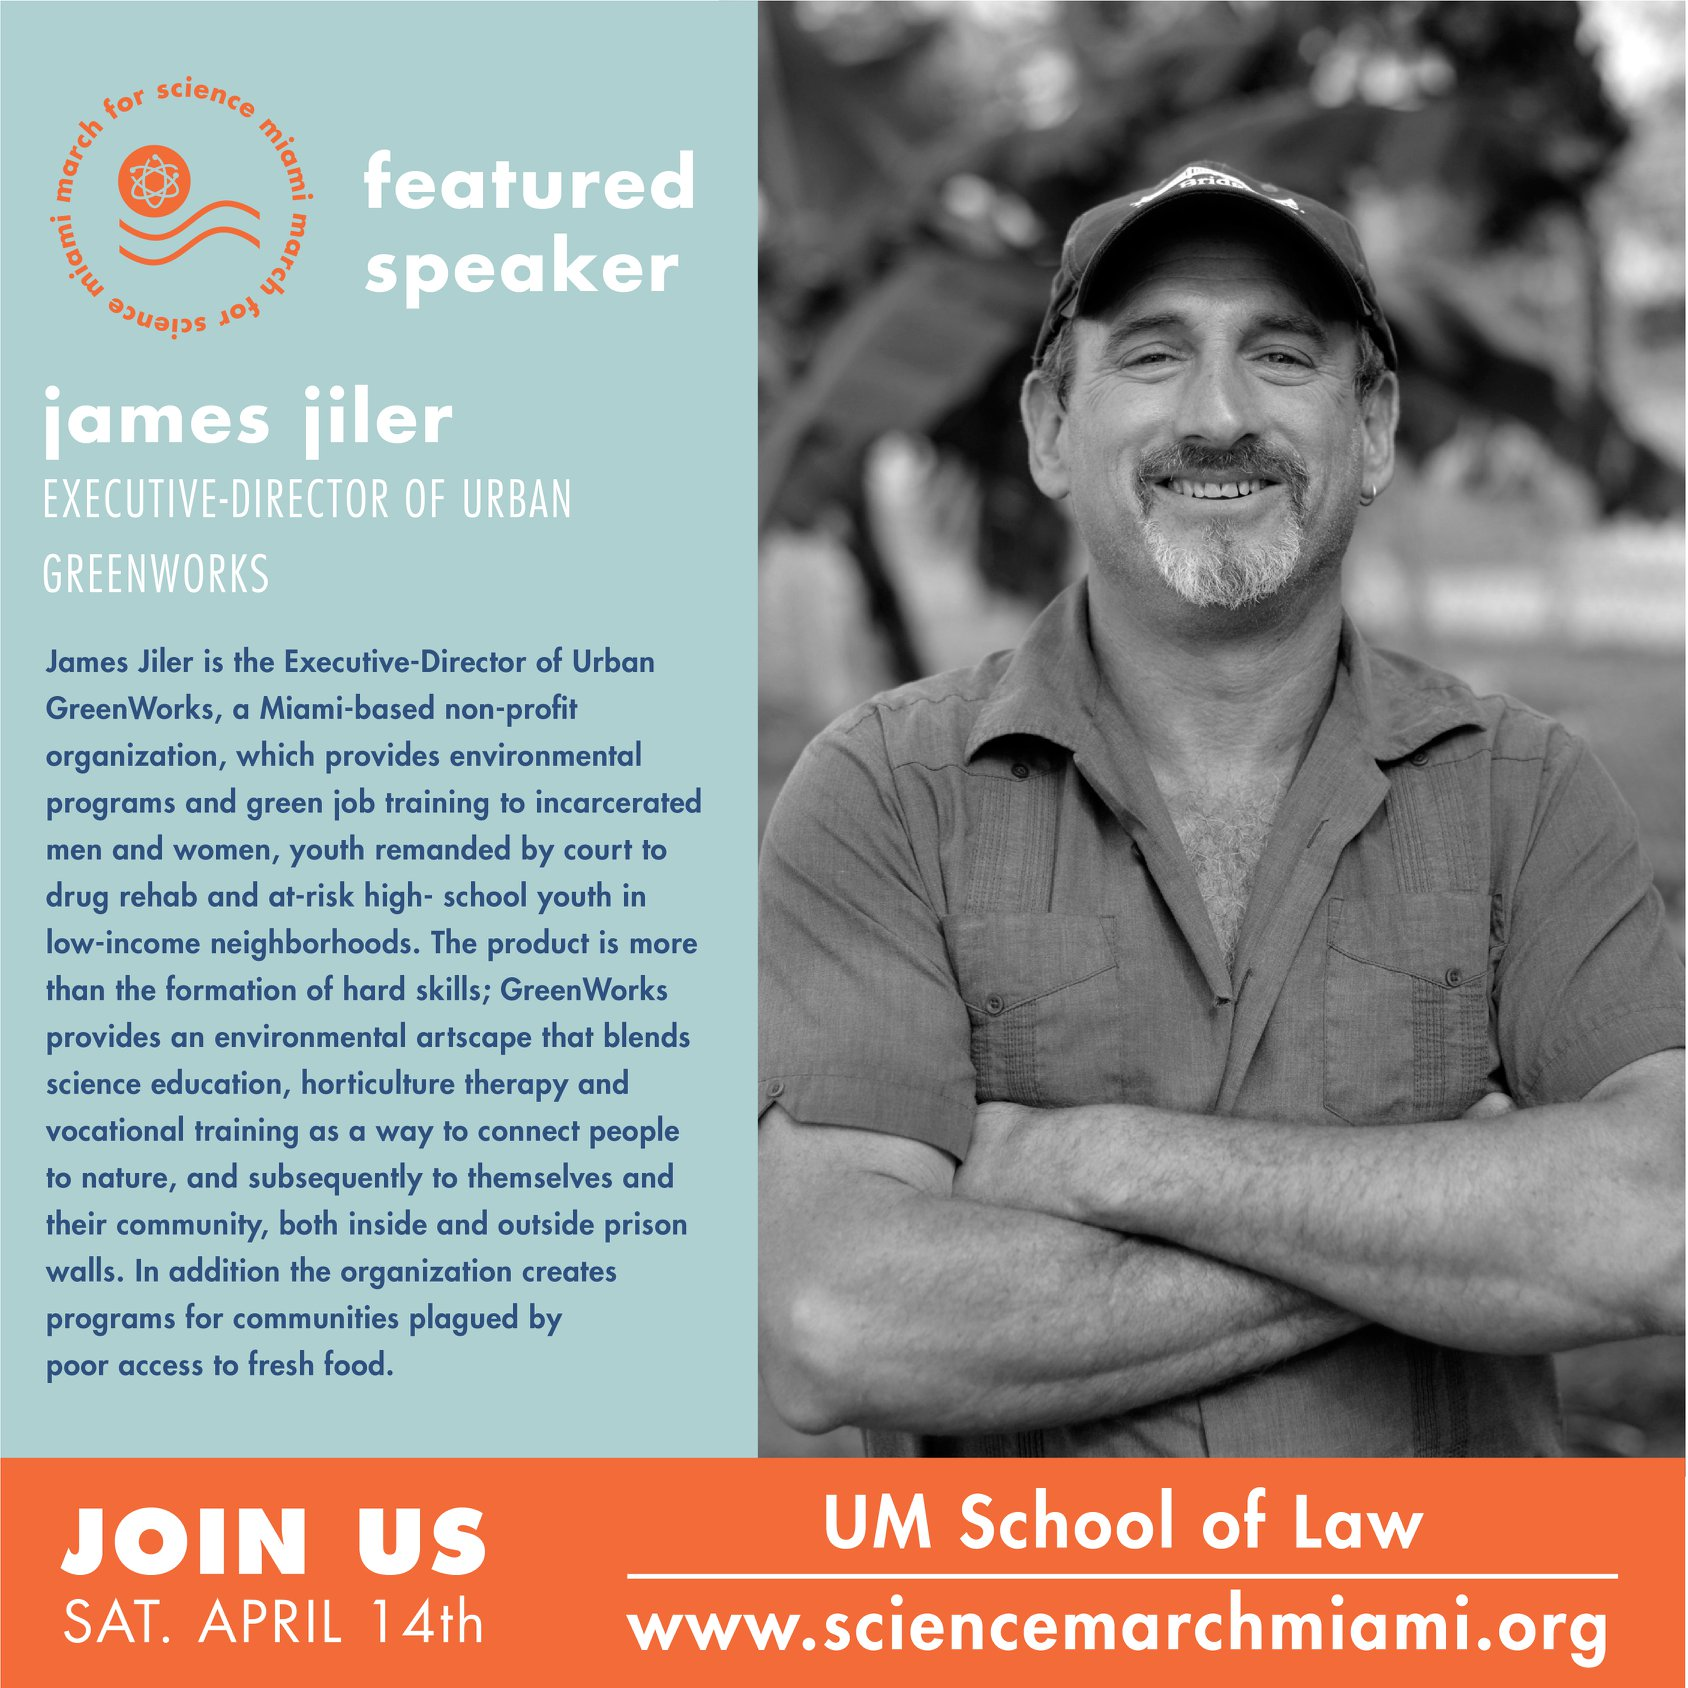 james jiler, m.s.   Executive-Director of  Urban GreenWorks , a Miami-based non-profit organization, which provides environmental programs and green job training to incarcerated men and women, youth remanded by court to drug rehab and at-risk high-school youth in low-income neighborhoods.